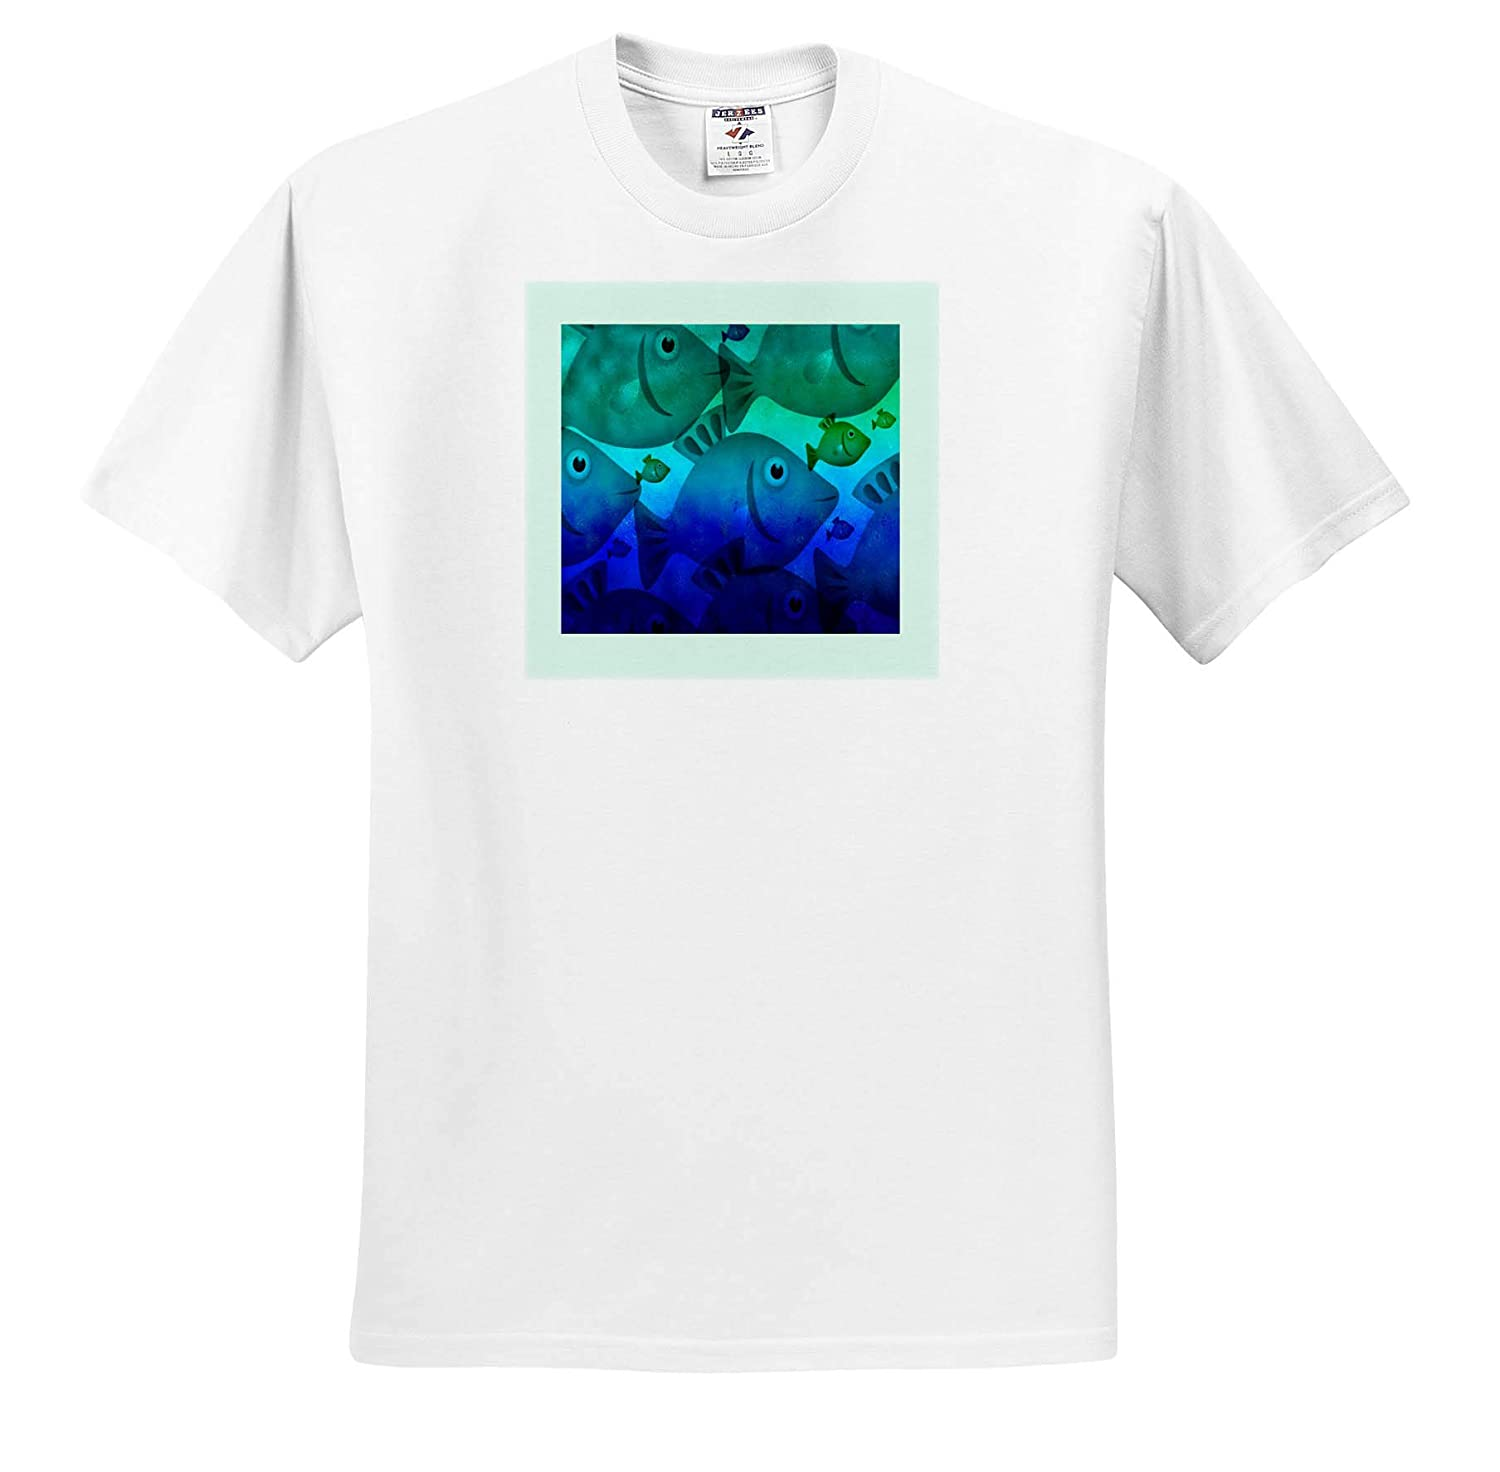 Image of Blue and Green Fish with Mint Frame Kids Summer Art ts/_312641 Adult T-Shirt XL 3dRose Lens Art by Florene